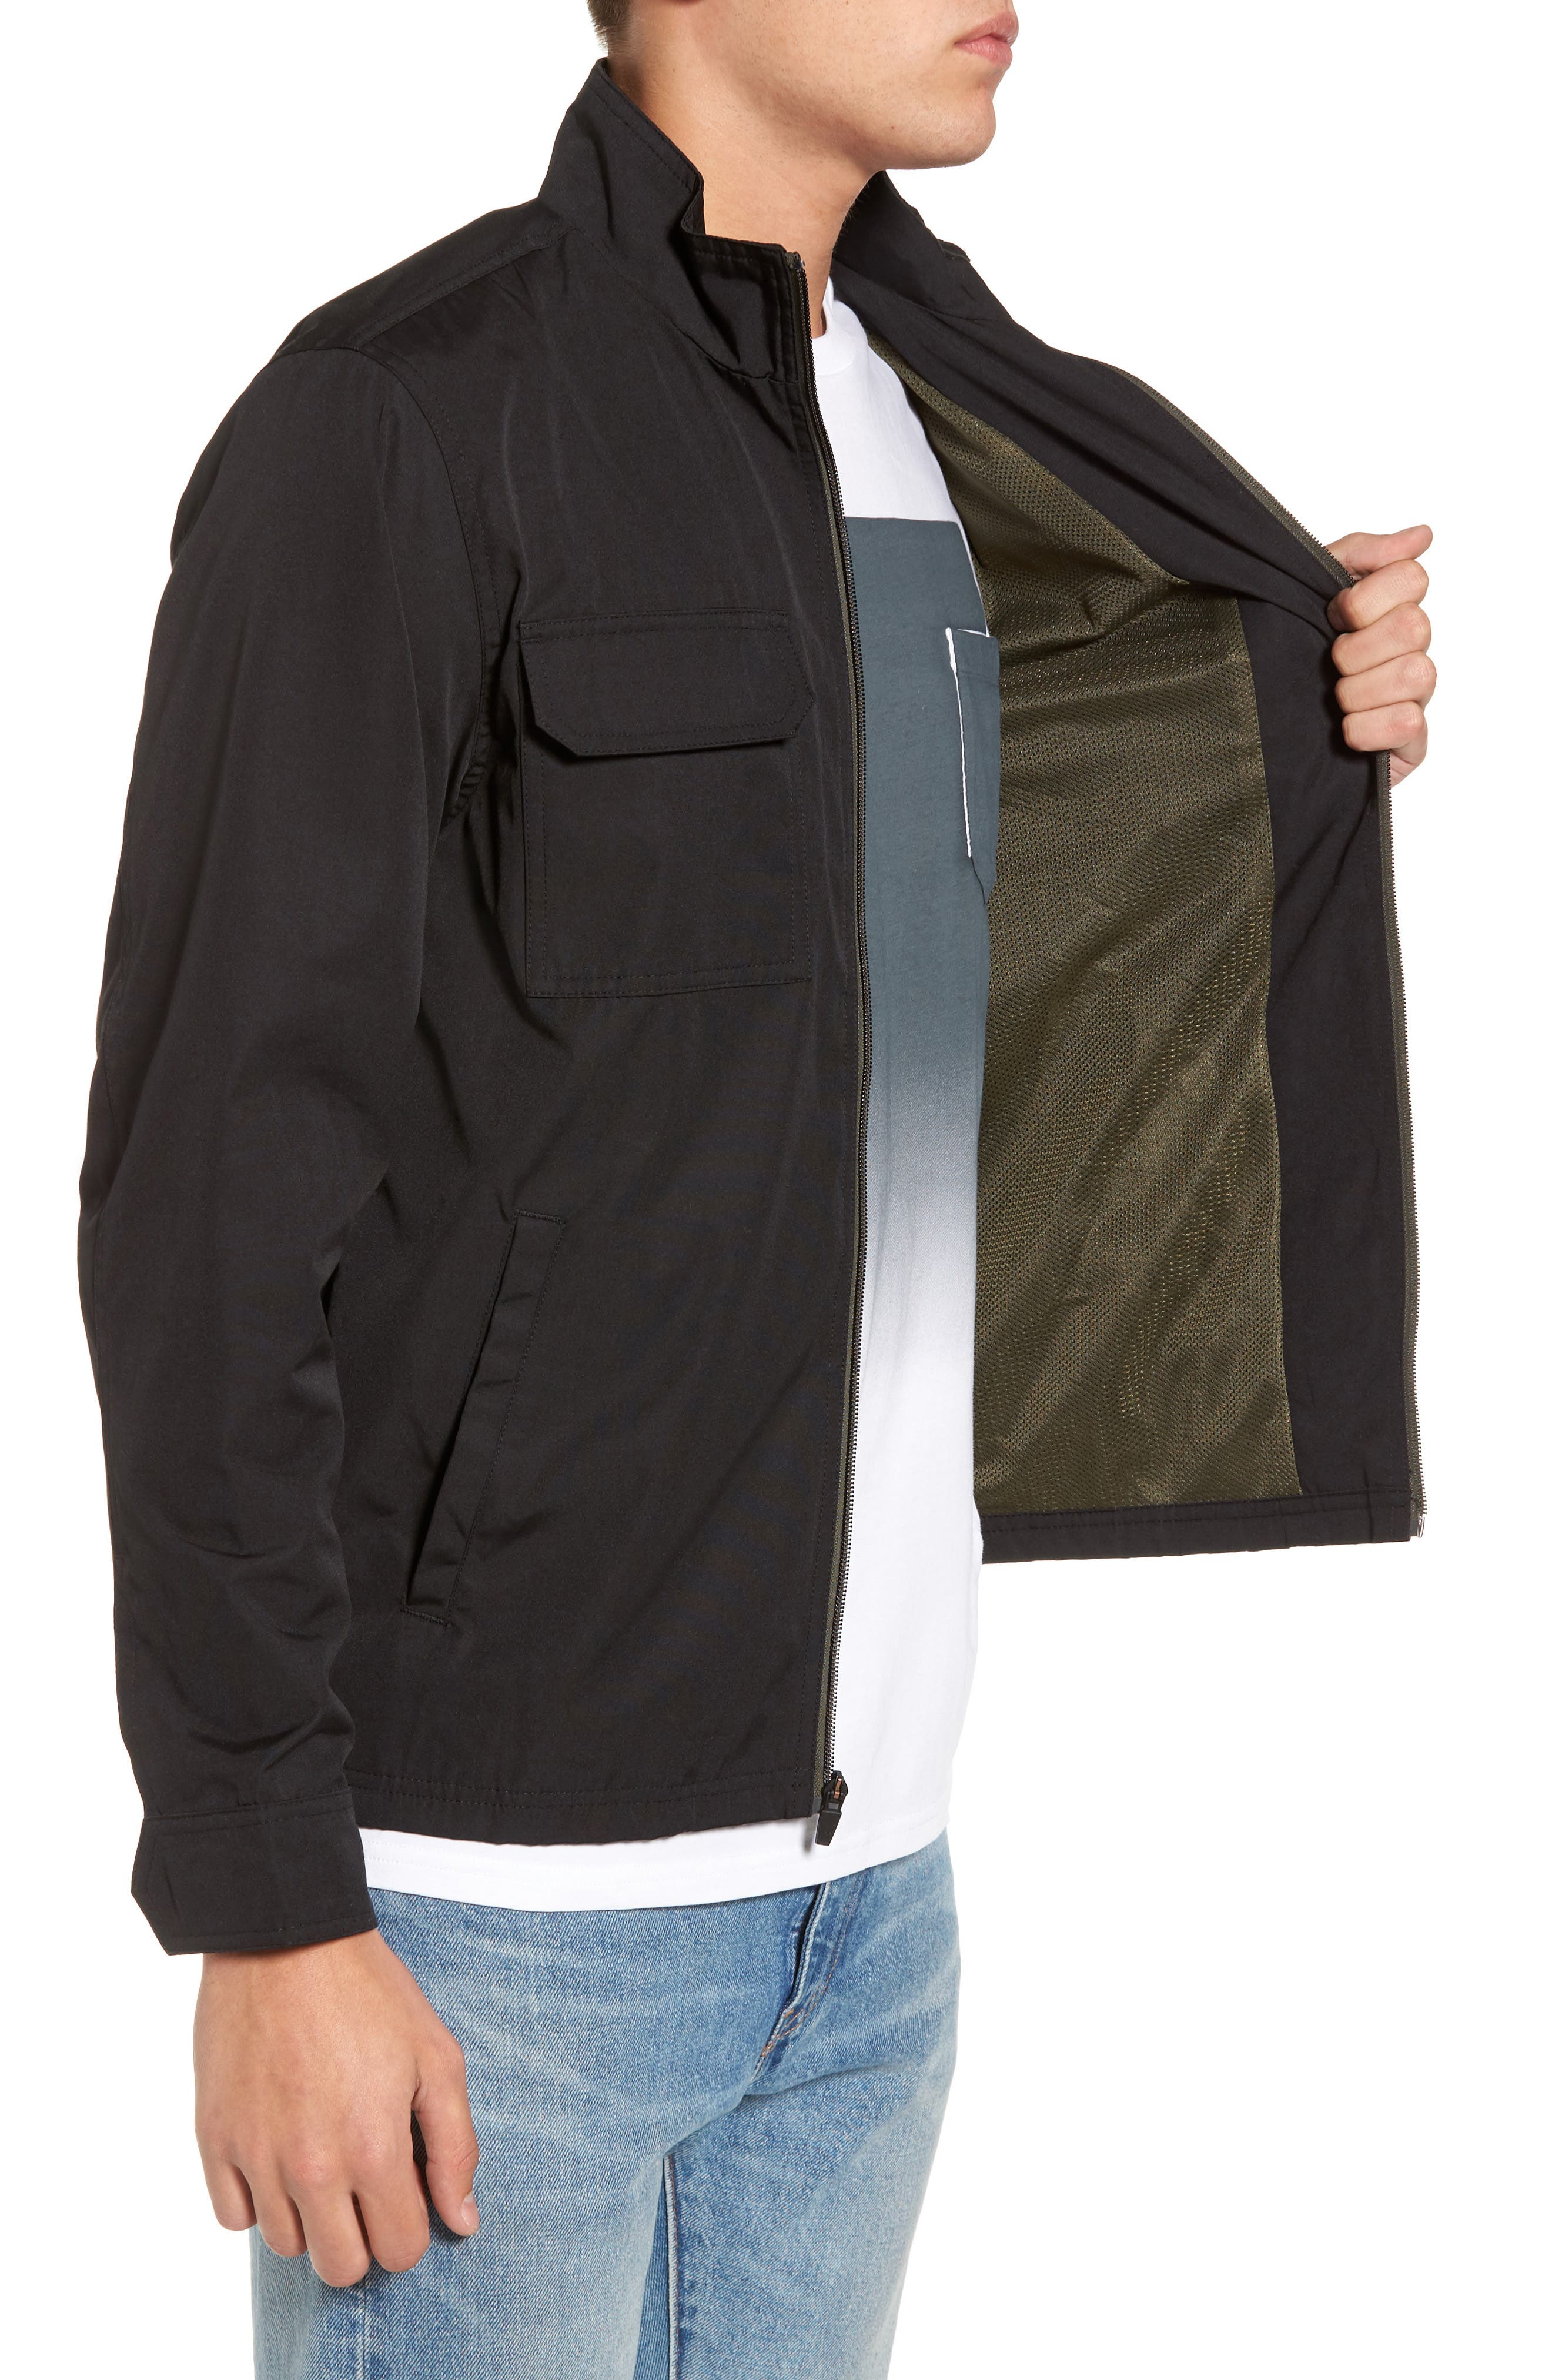 Staple Jacket,                             Alternate thumbnail 3, color,                             Solid Black